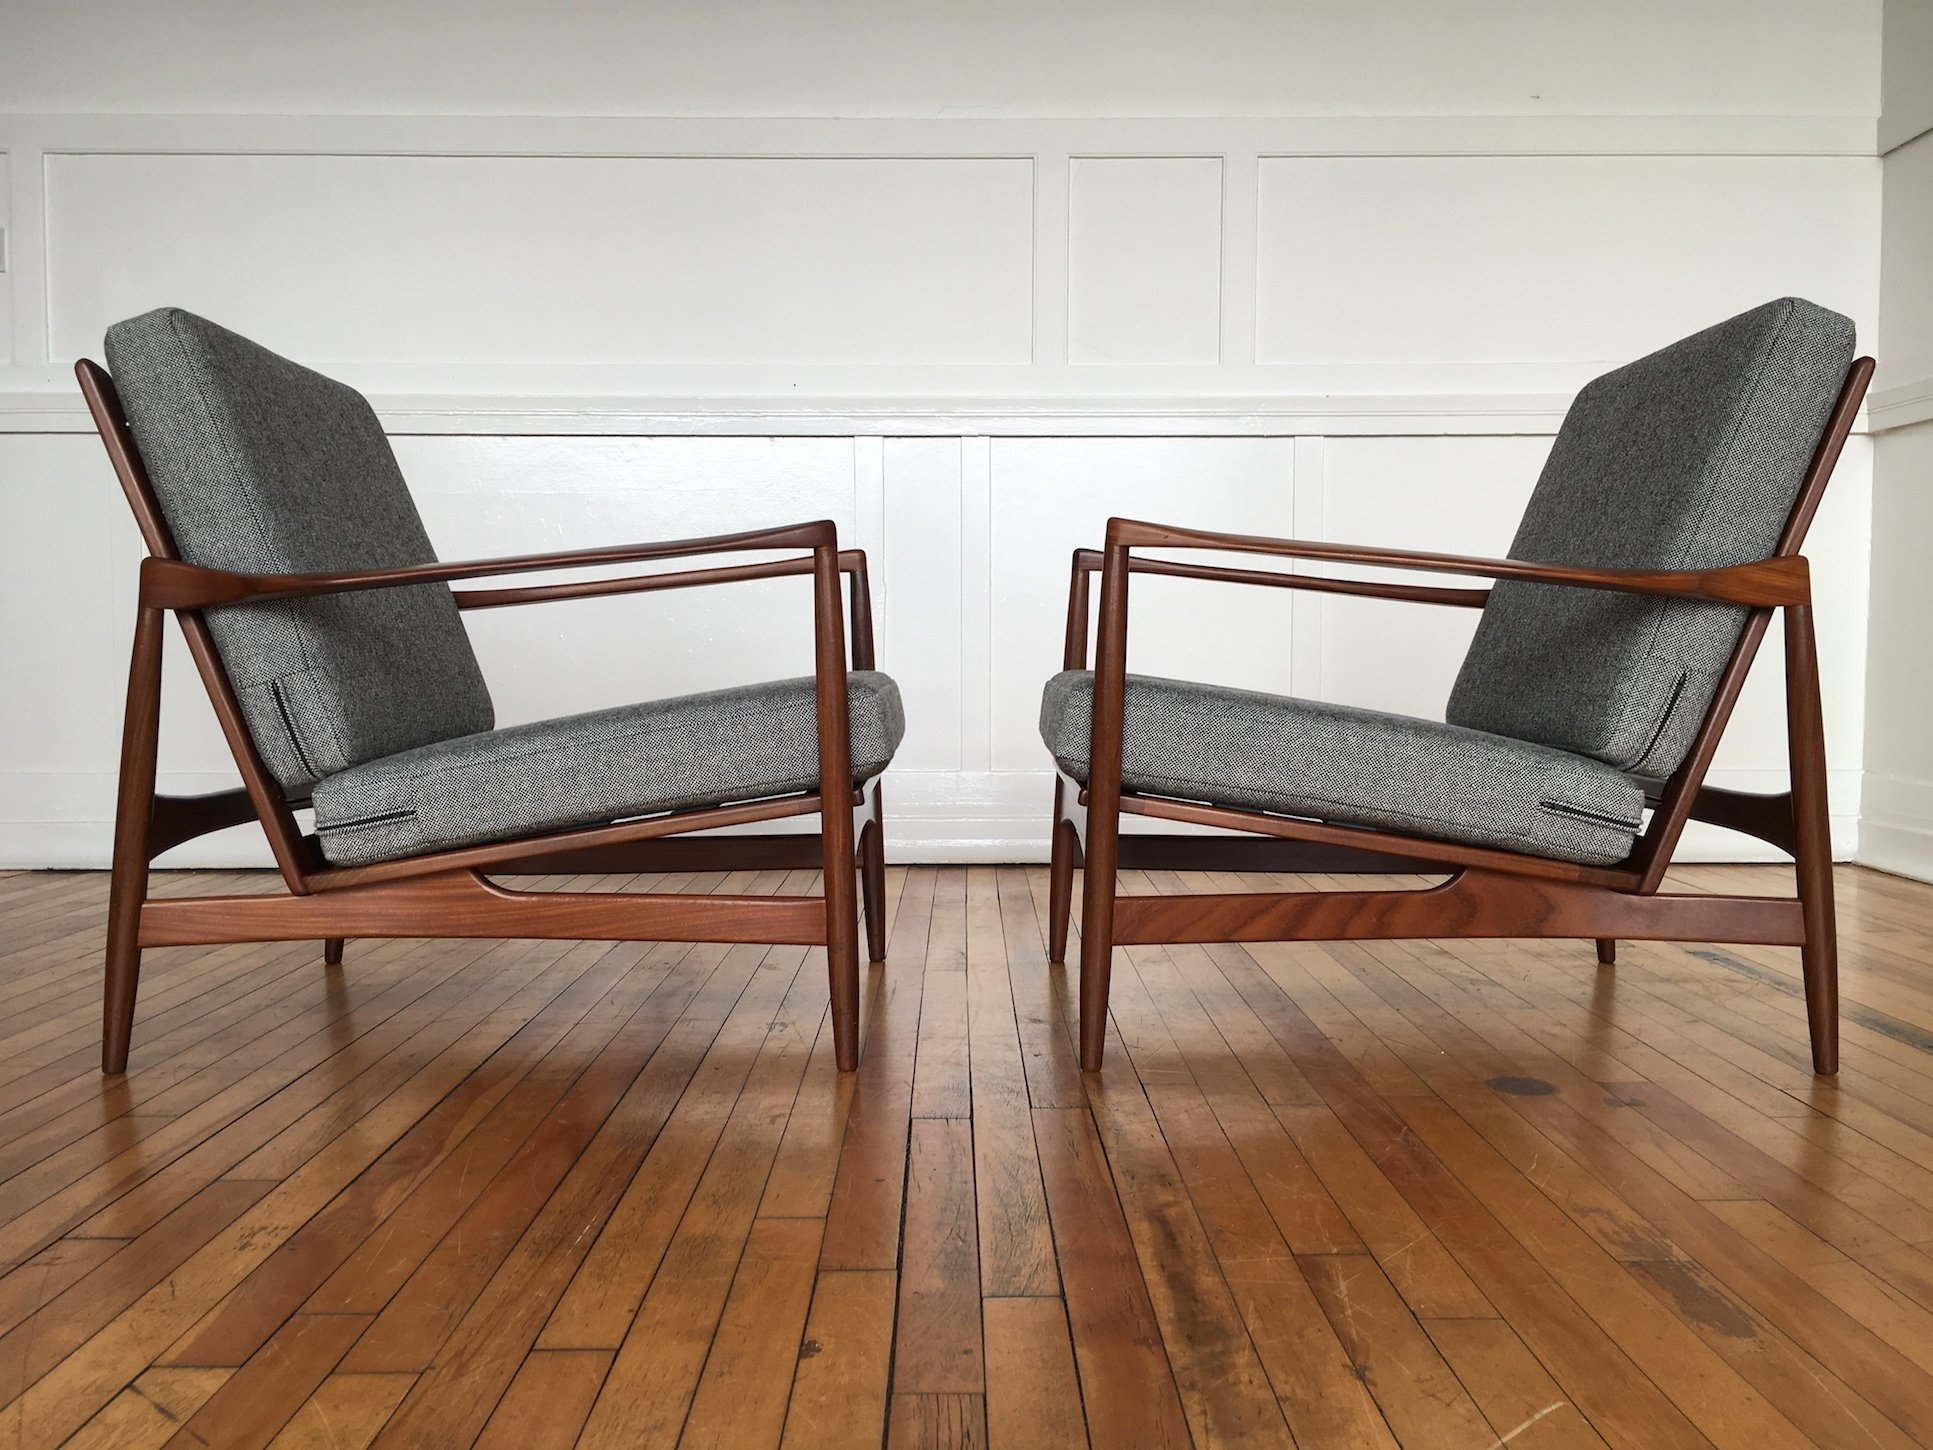 Ordinaire Pair Of Ib Kofod Larsen Easy Chairs Lounge Chairs For G Plan Danish Range